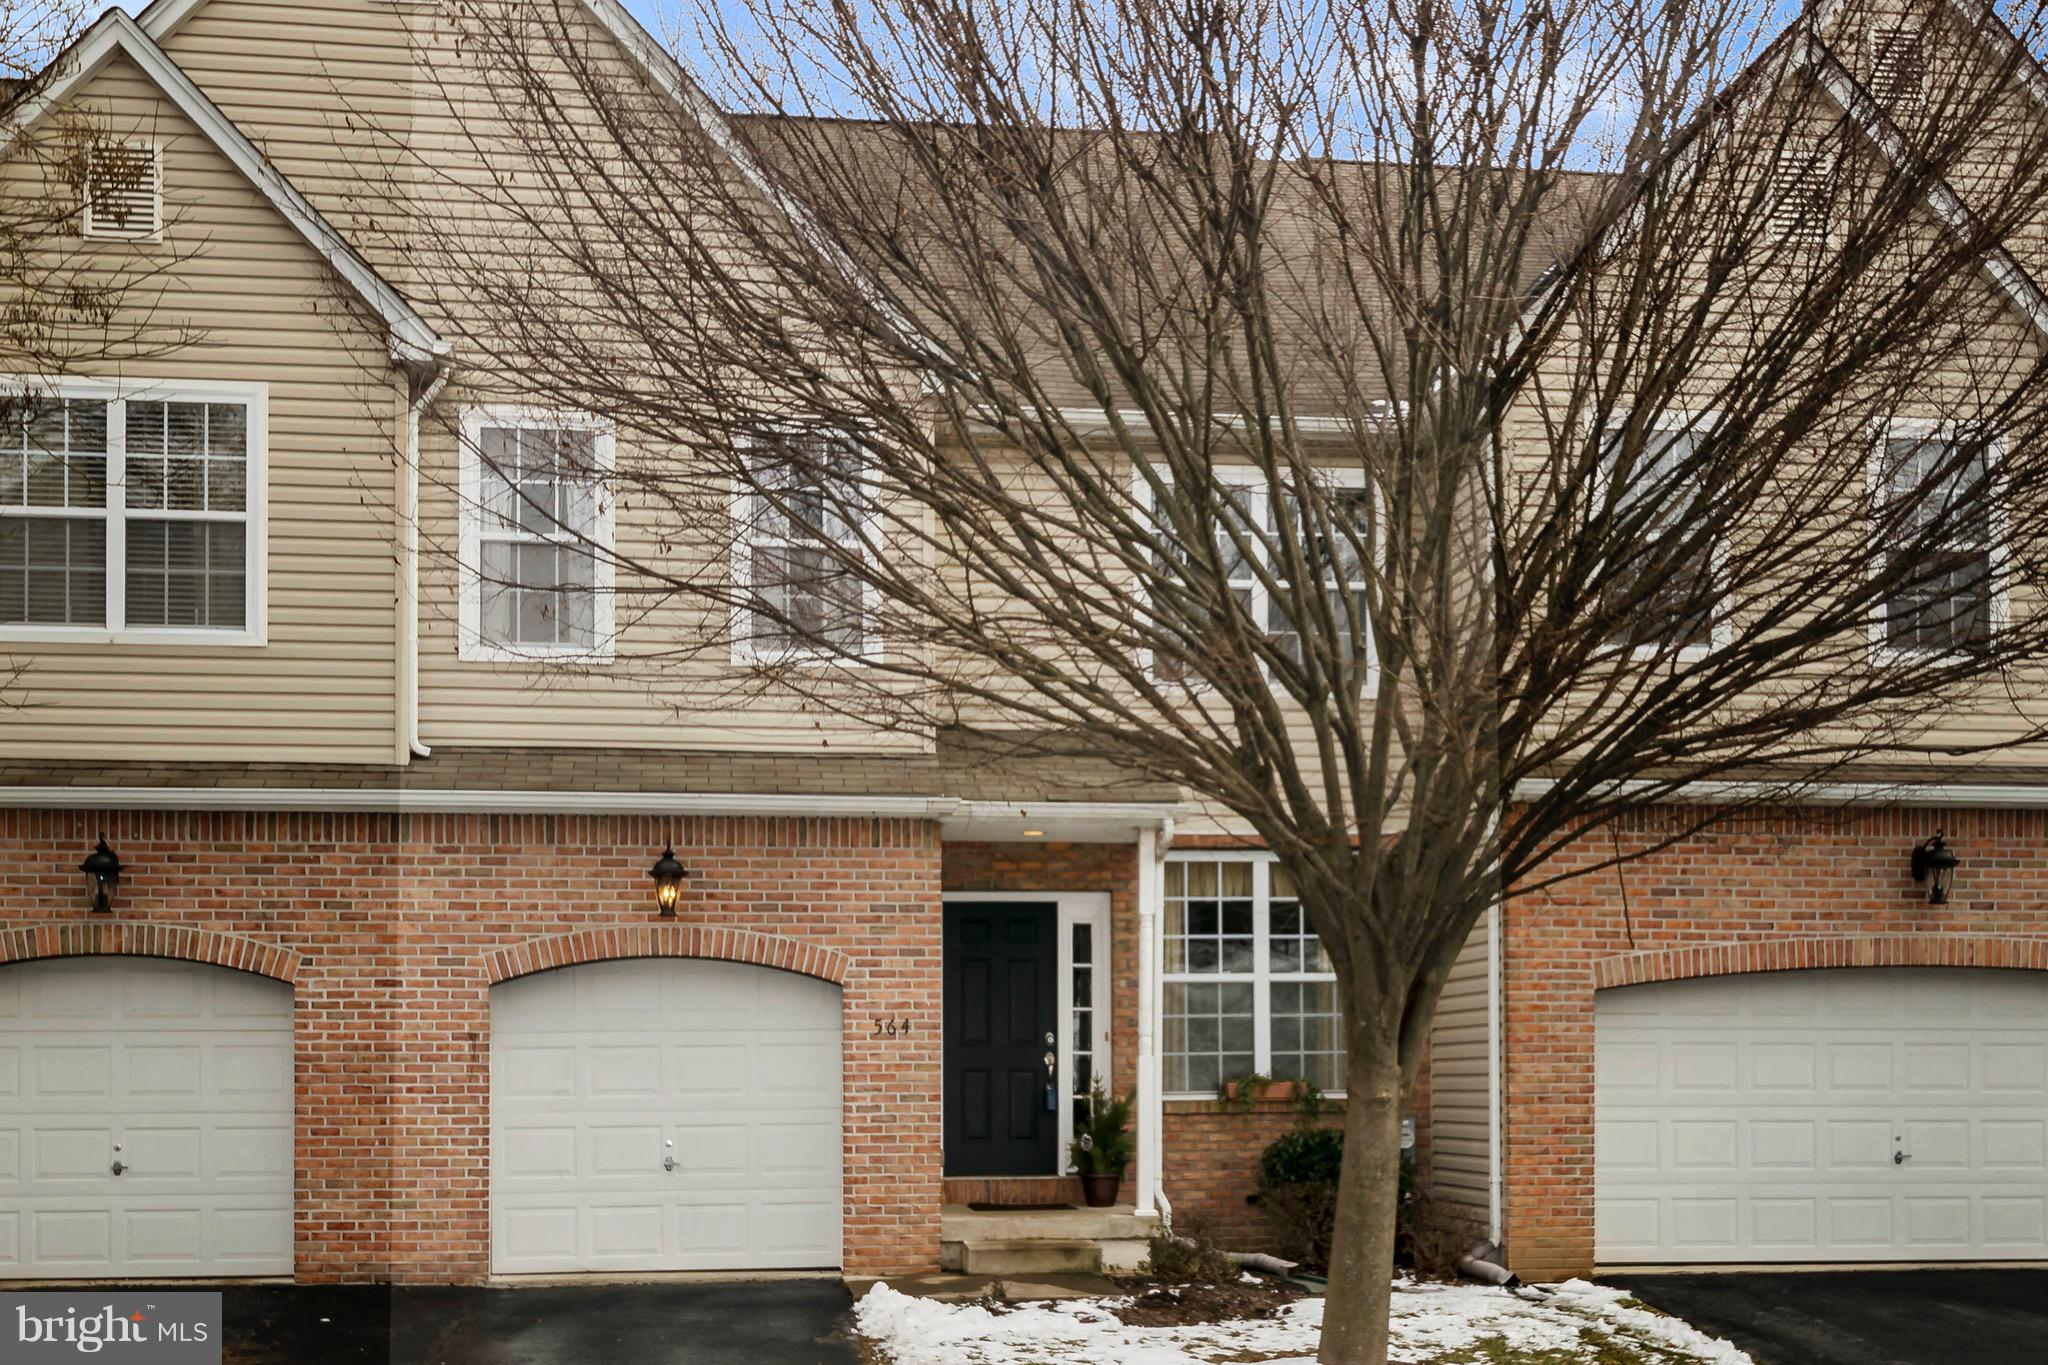 This 3 Bedroom, 2.5 Bath Megill Home townhouse is ready for its new owners!  Are you looking to move quickly??  This home is a clean slate, waiting for you to move in and make it your own!  You will be impressed by the open, airy feel and superb layout.  Cozy up by the gas fireplace in the family room, which boasts a magnificent two story ceiling and large windows that bathe the room in natural light.  Enjoy your kitchen which features plenty of counter space, a breakfast bar, and eat-in dining area.  Just off the kitchen, there are glass sliders that lead to a large deck that overlooks a serene wooded area.  Upstairs, the master bedroom suite has two large closets, as well as a master bath en-suite with large walk in shower.  Two additional spacious bedrooms, hall laundry and full bath complete the second floor.  The finished, walk-out basement is a great spot for a theatre, home office or playroom!  You will also find a very large, clean storage area in the basement.  All of this, plus the seller is including a home warranty for your peace of mind!  This home is in a fabulous community, in close proximity to the desirable Avon Grove schools and within walking distance to downtown West Grove & Goddard Park with its walking/bike trails, playground and dog park!  If location, ease of living and style are important to you, you will not want to miss this one!